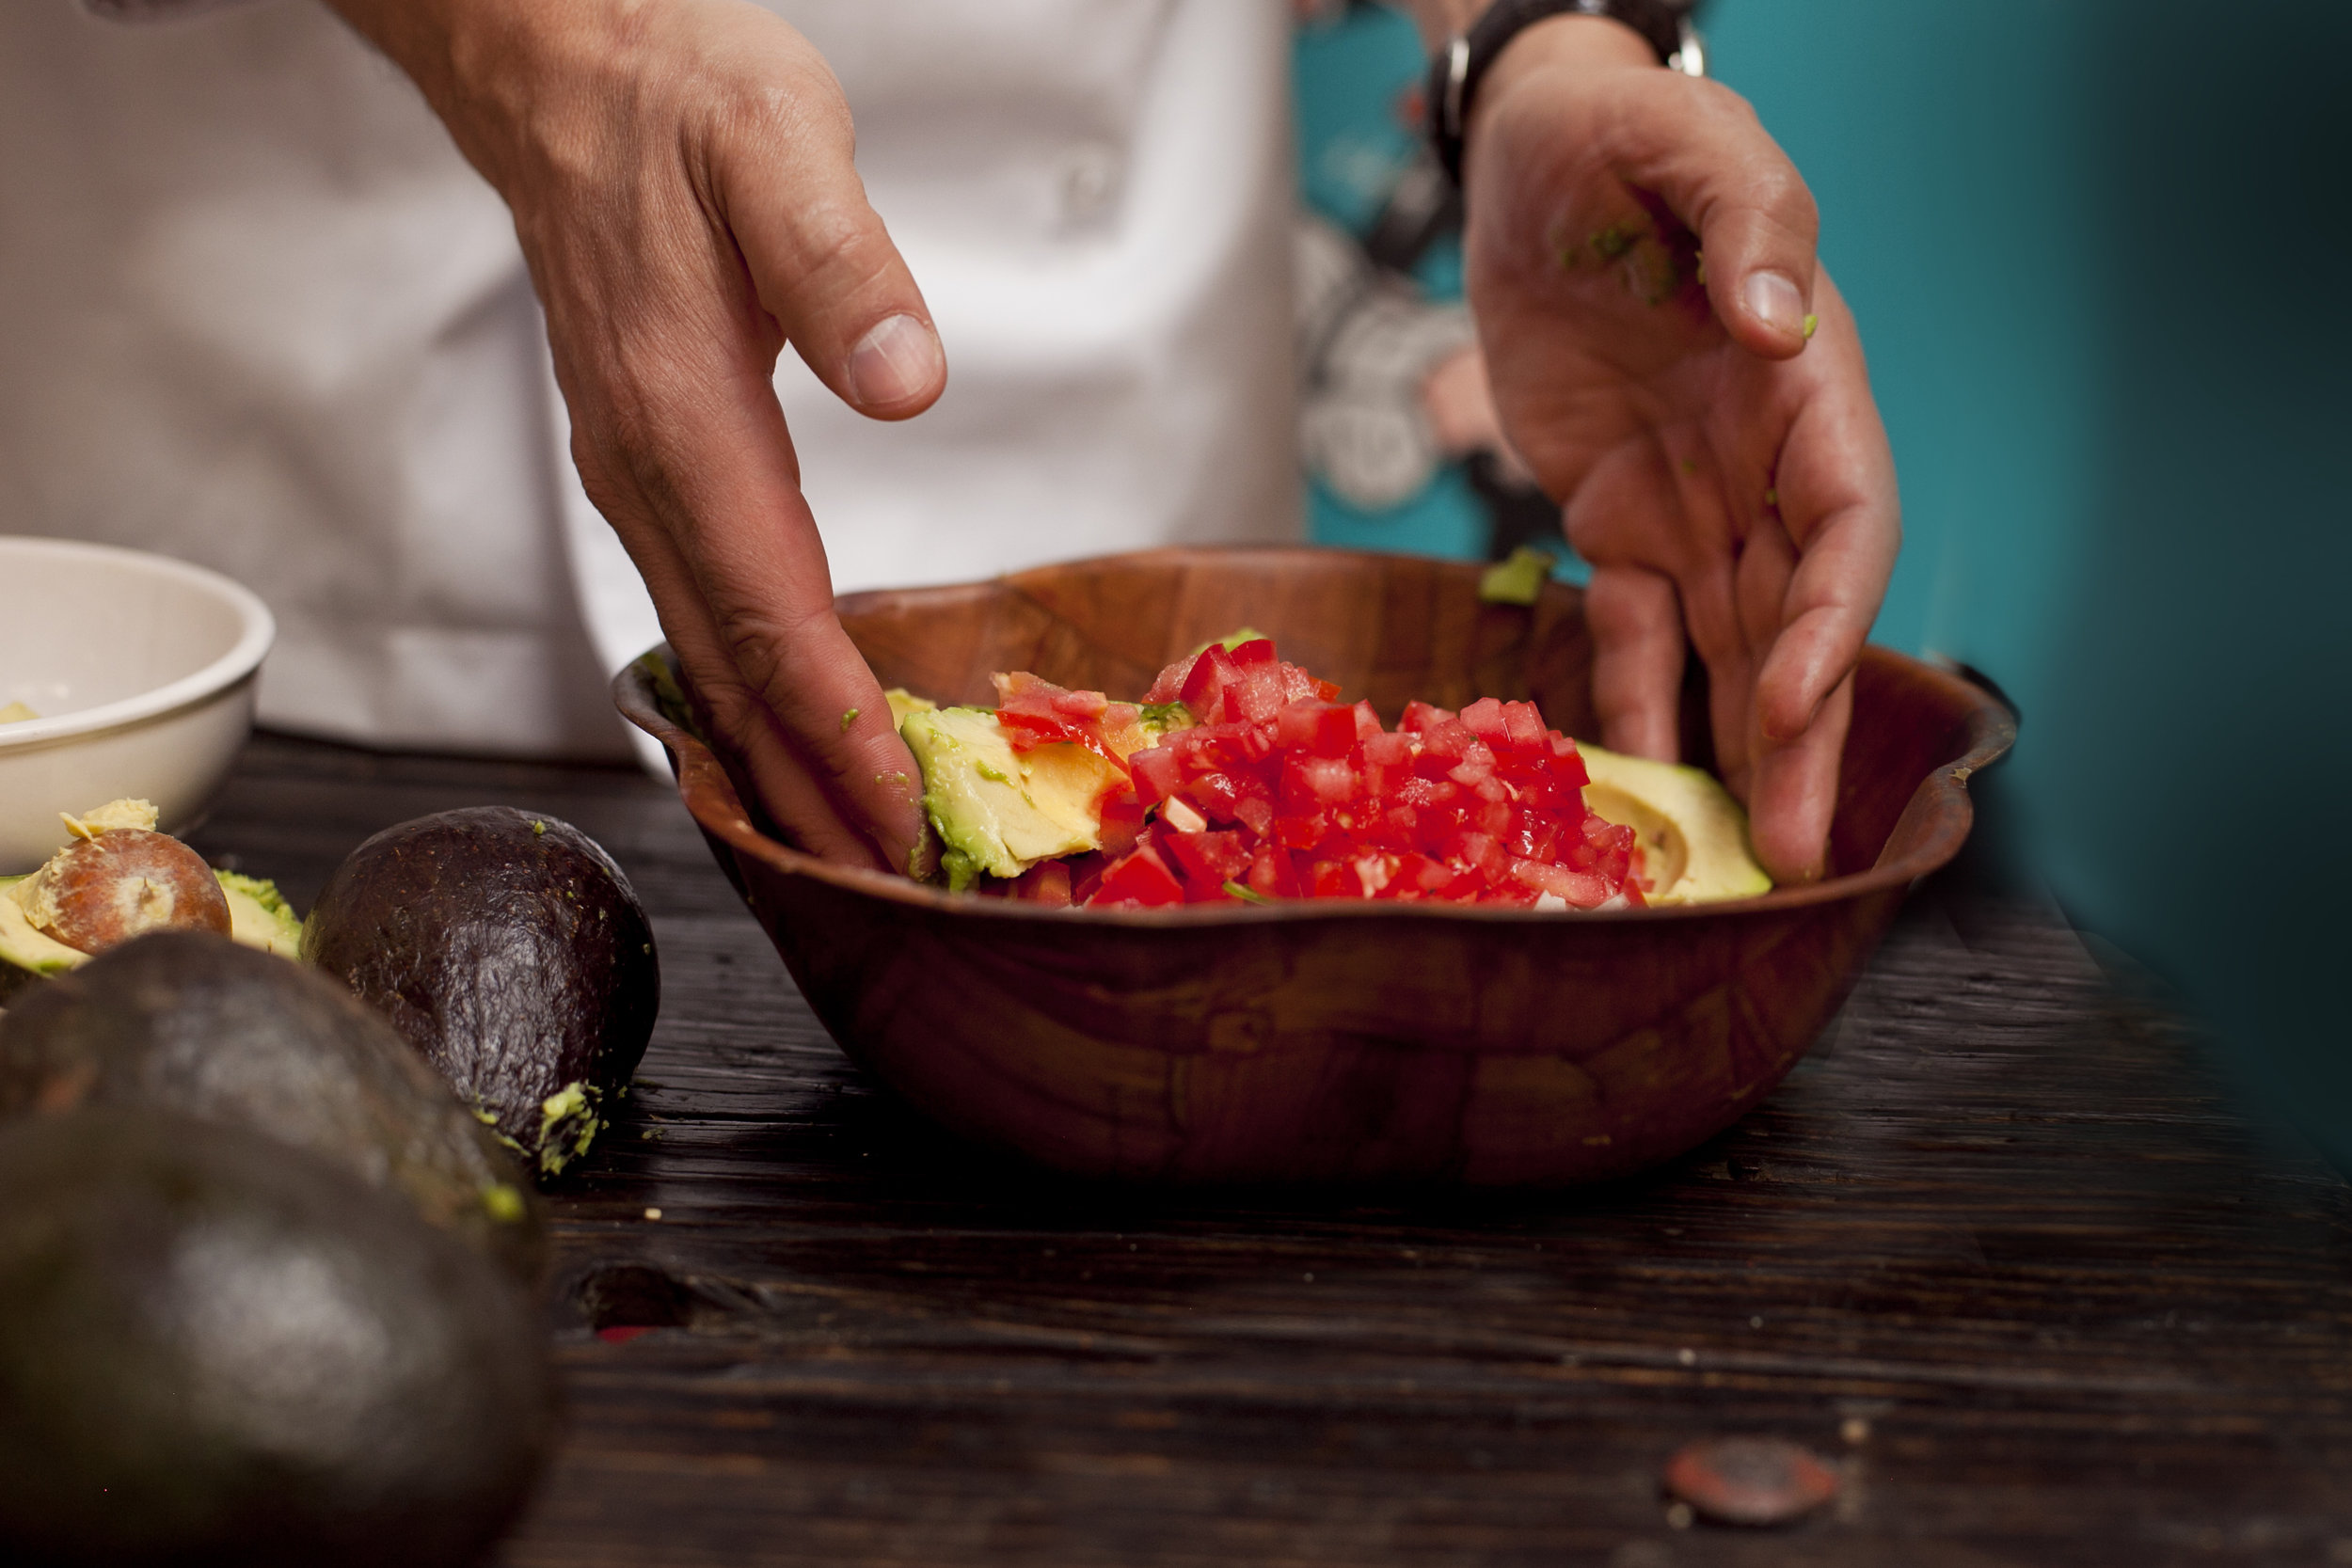 Copy of mixing guacamole in a bowl